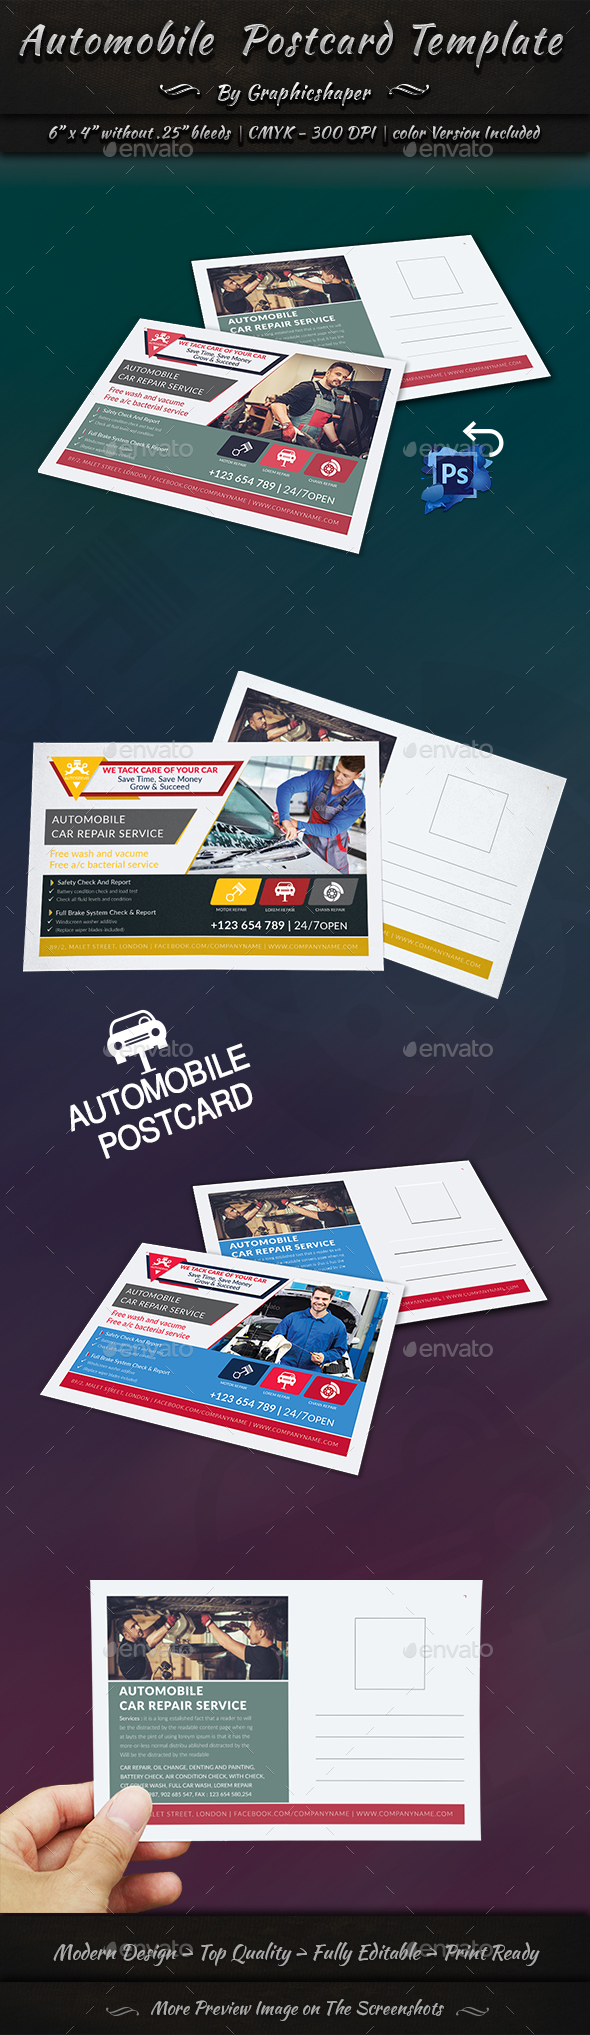 Automobile Post Card Template - Cards & Invites Print Templates